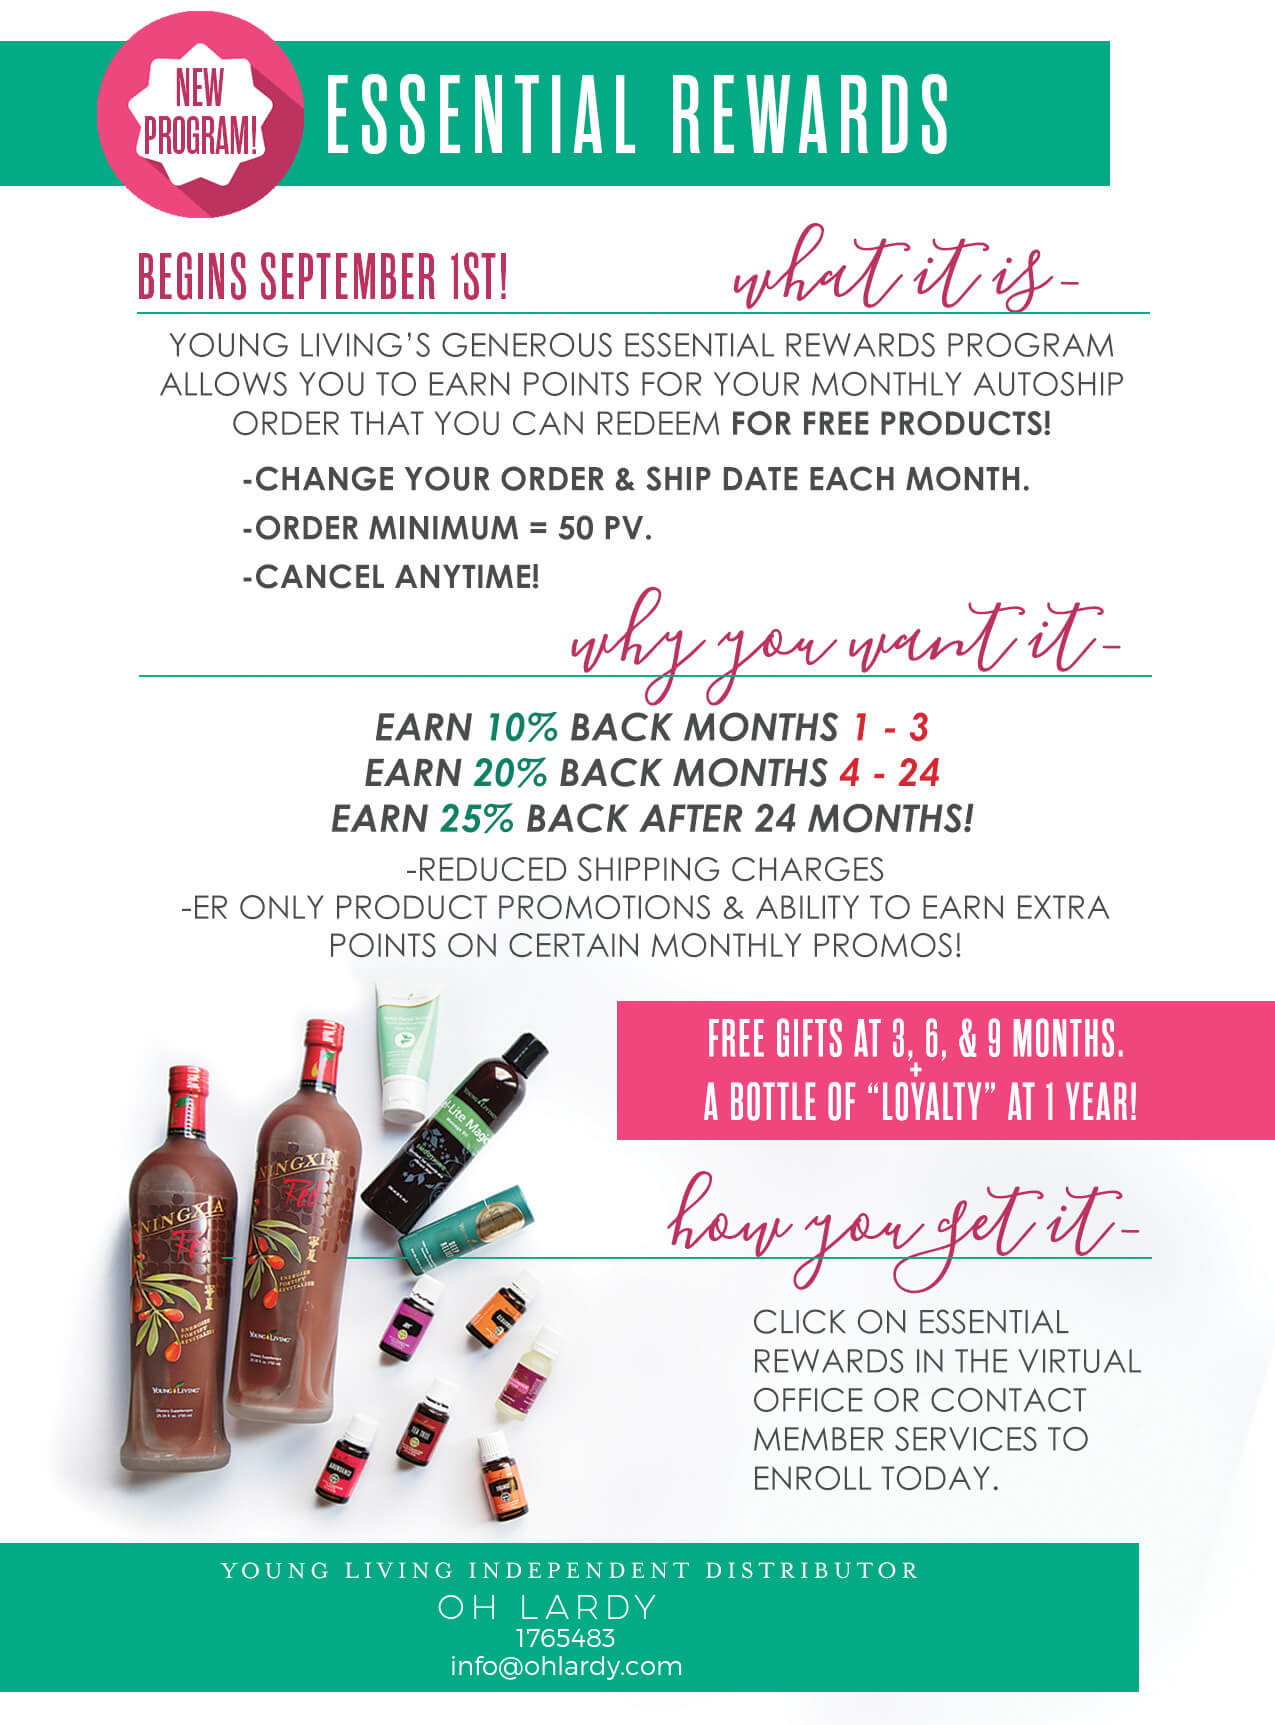 All About Ningxia Red Oh Lardy